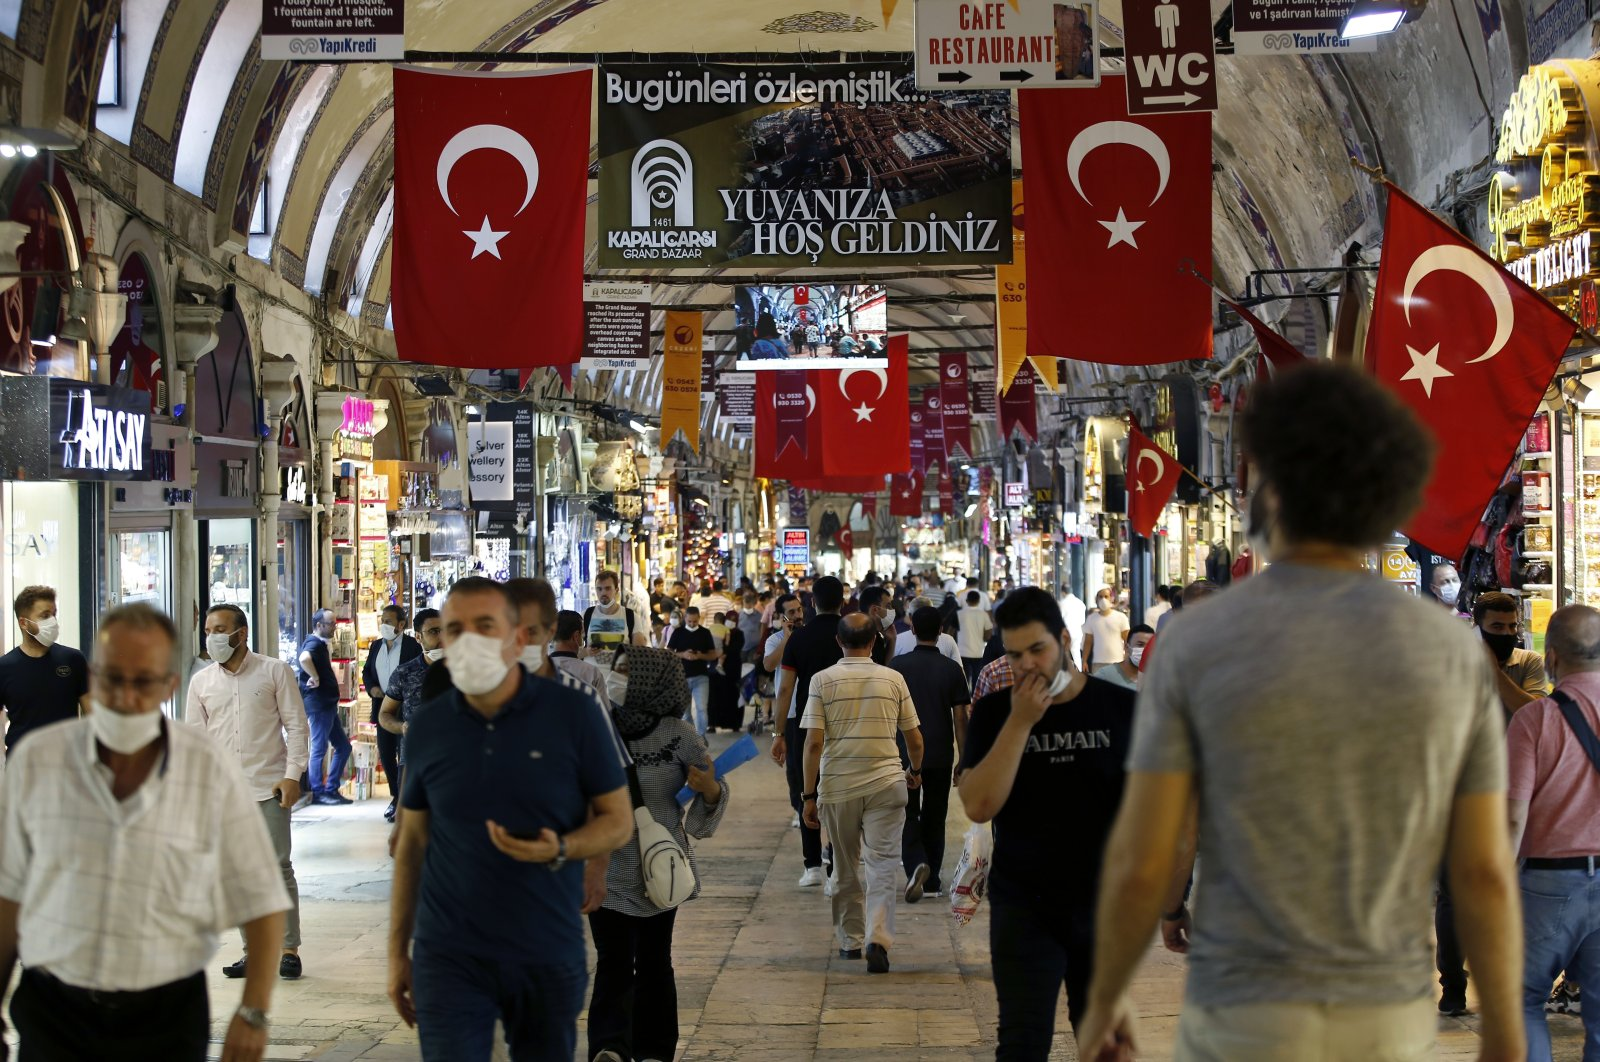 People wearing protective face masks against the spread of the coronavirus walk inside the Grand Bazaar, an iconic 15th-century marketplace, in Istanbul, Aug. 7, 2020. (AP Photo)